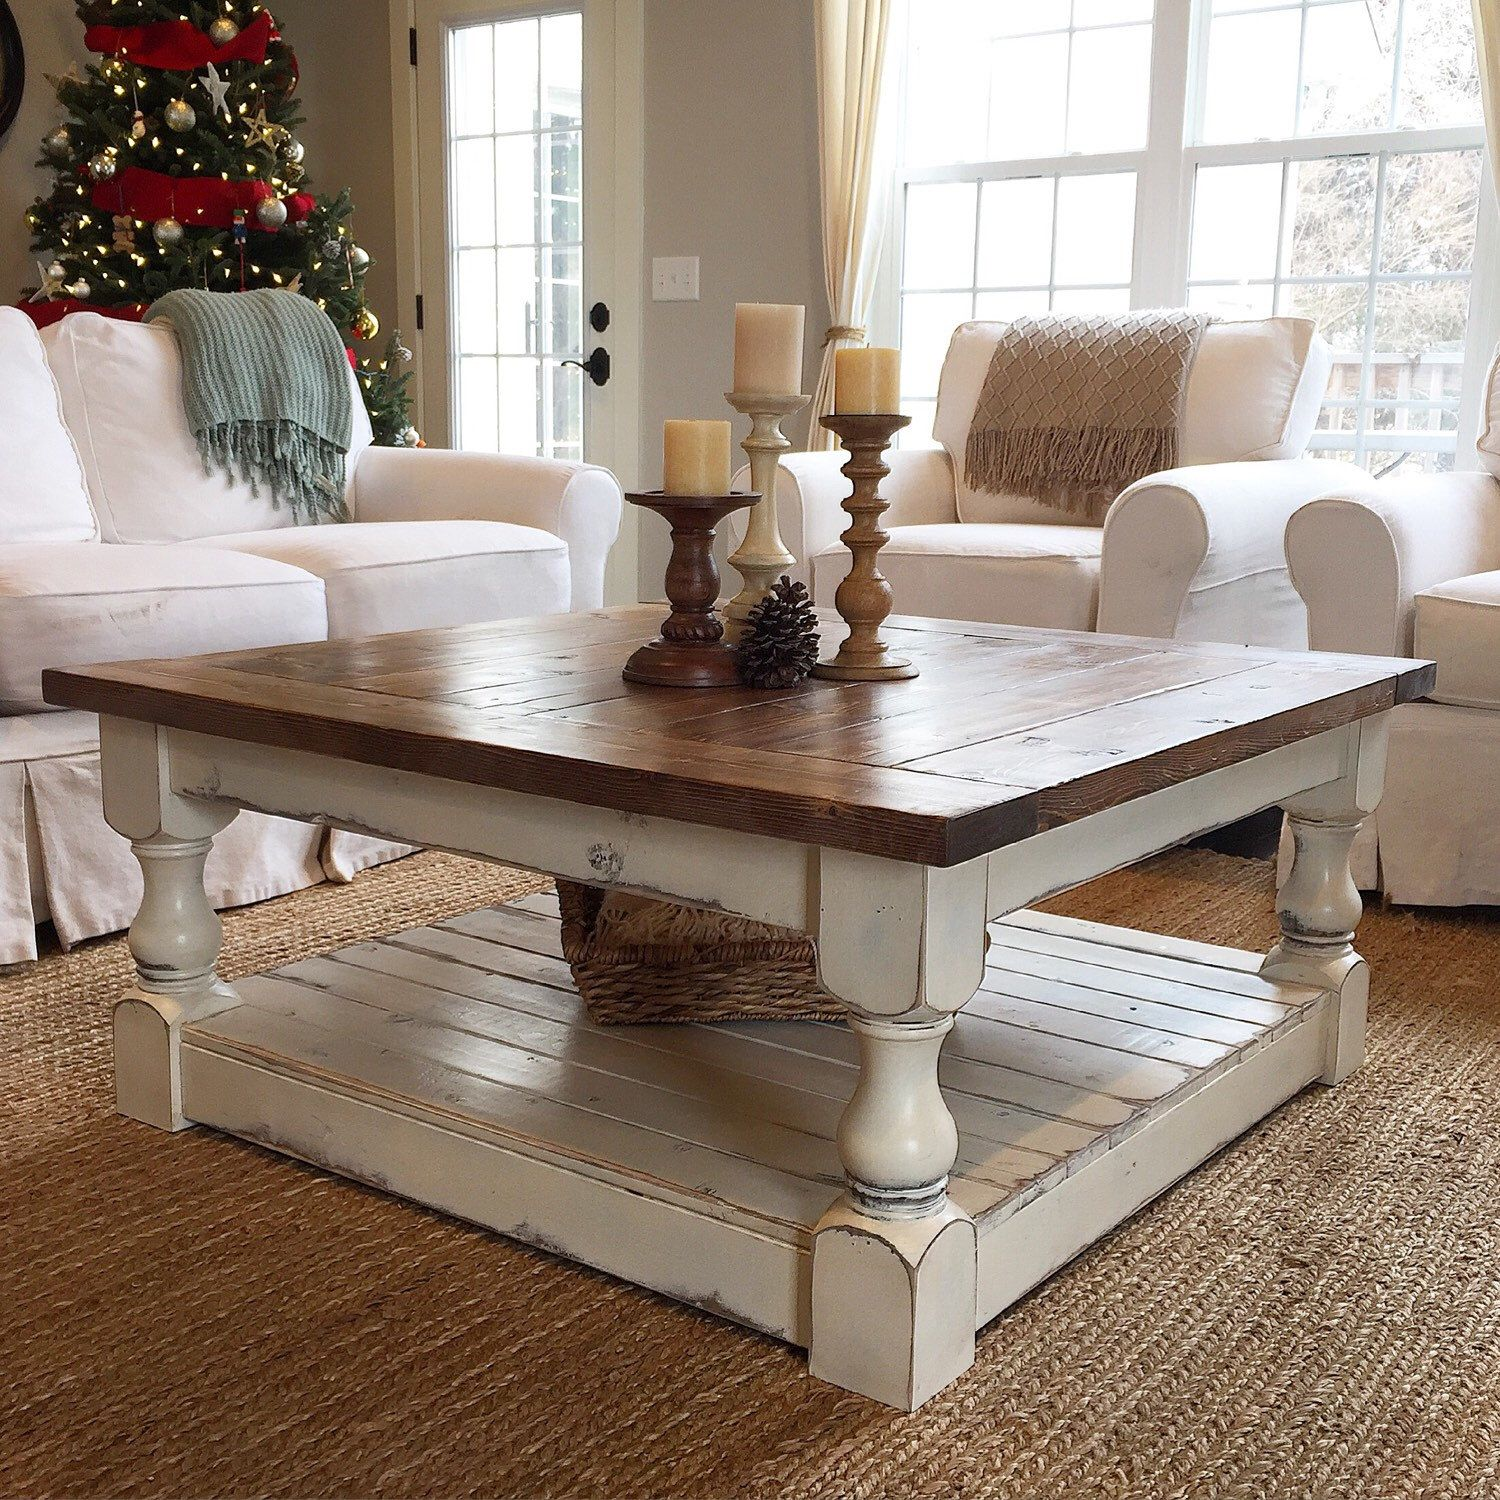 Charmant Large Antique White Harvest Coffee Table By BushelandPeckFarm On Etsy  Https://www.etsy.com/listing/259307755/large Antique White Harvest Coffee  Table